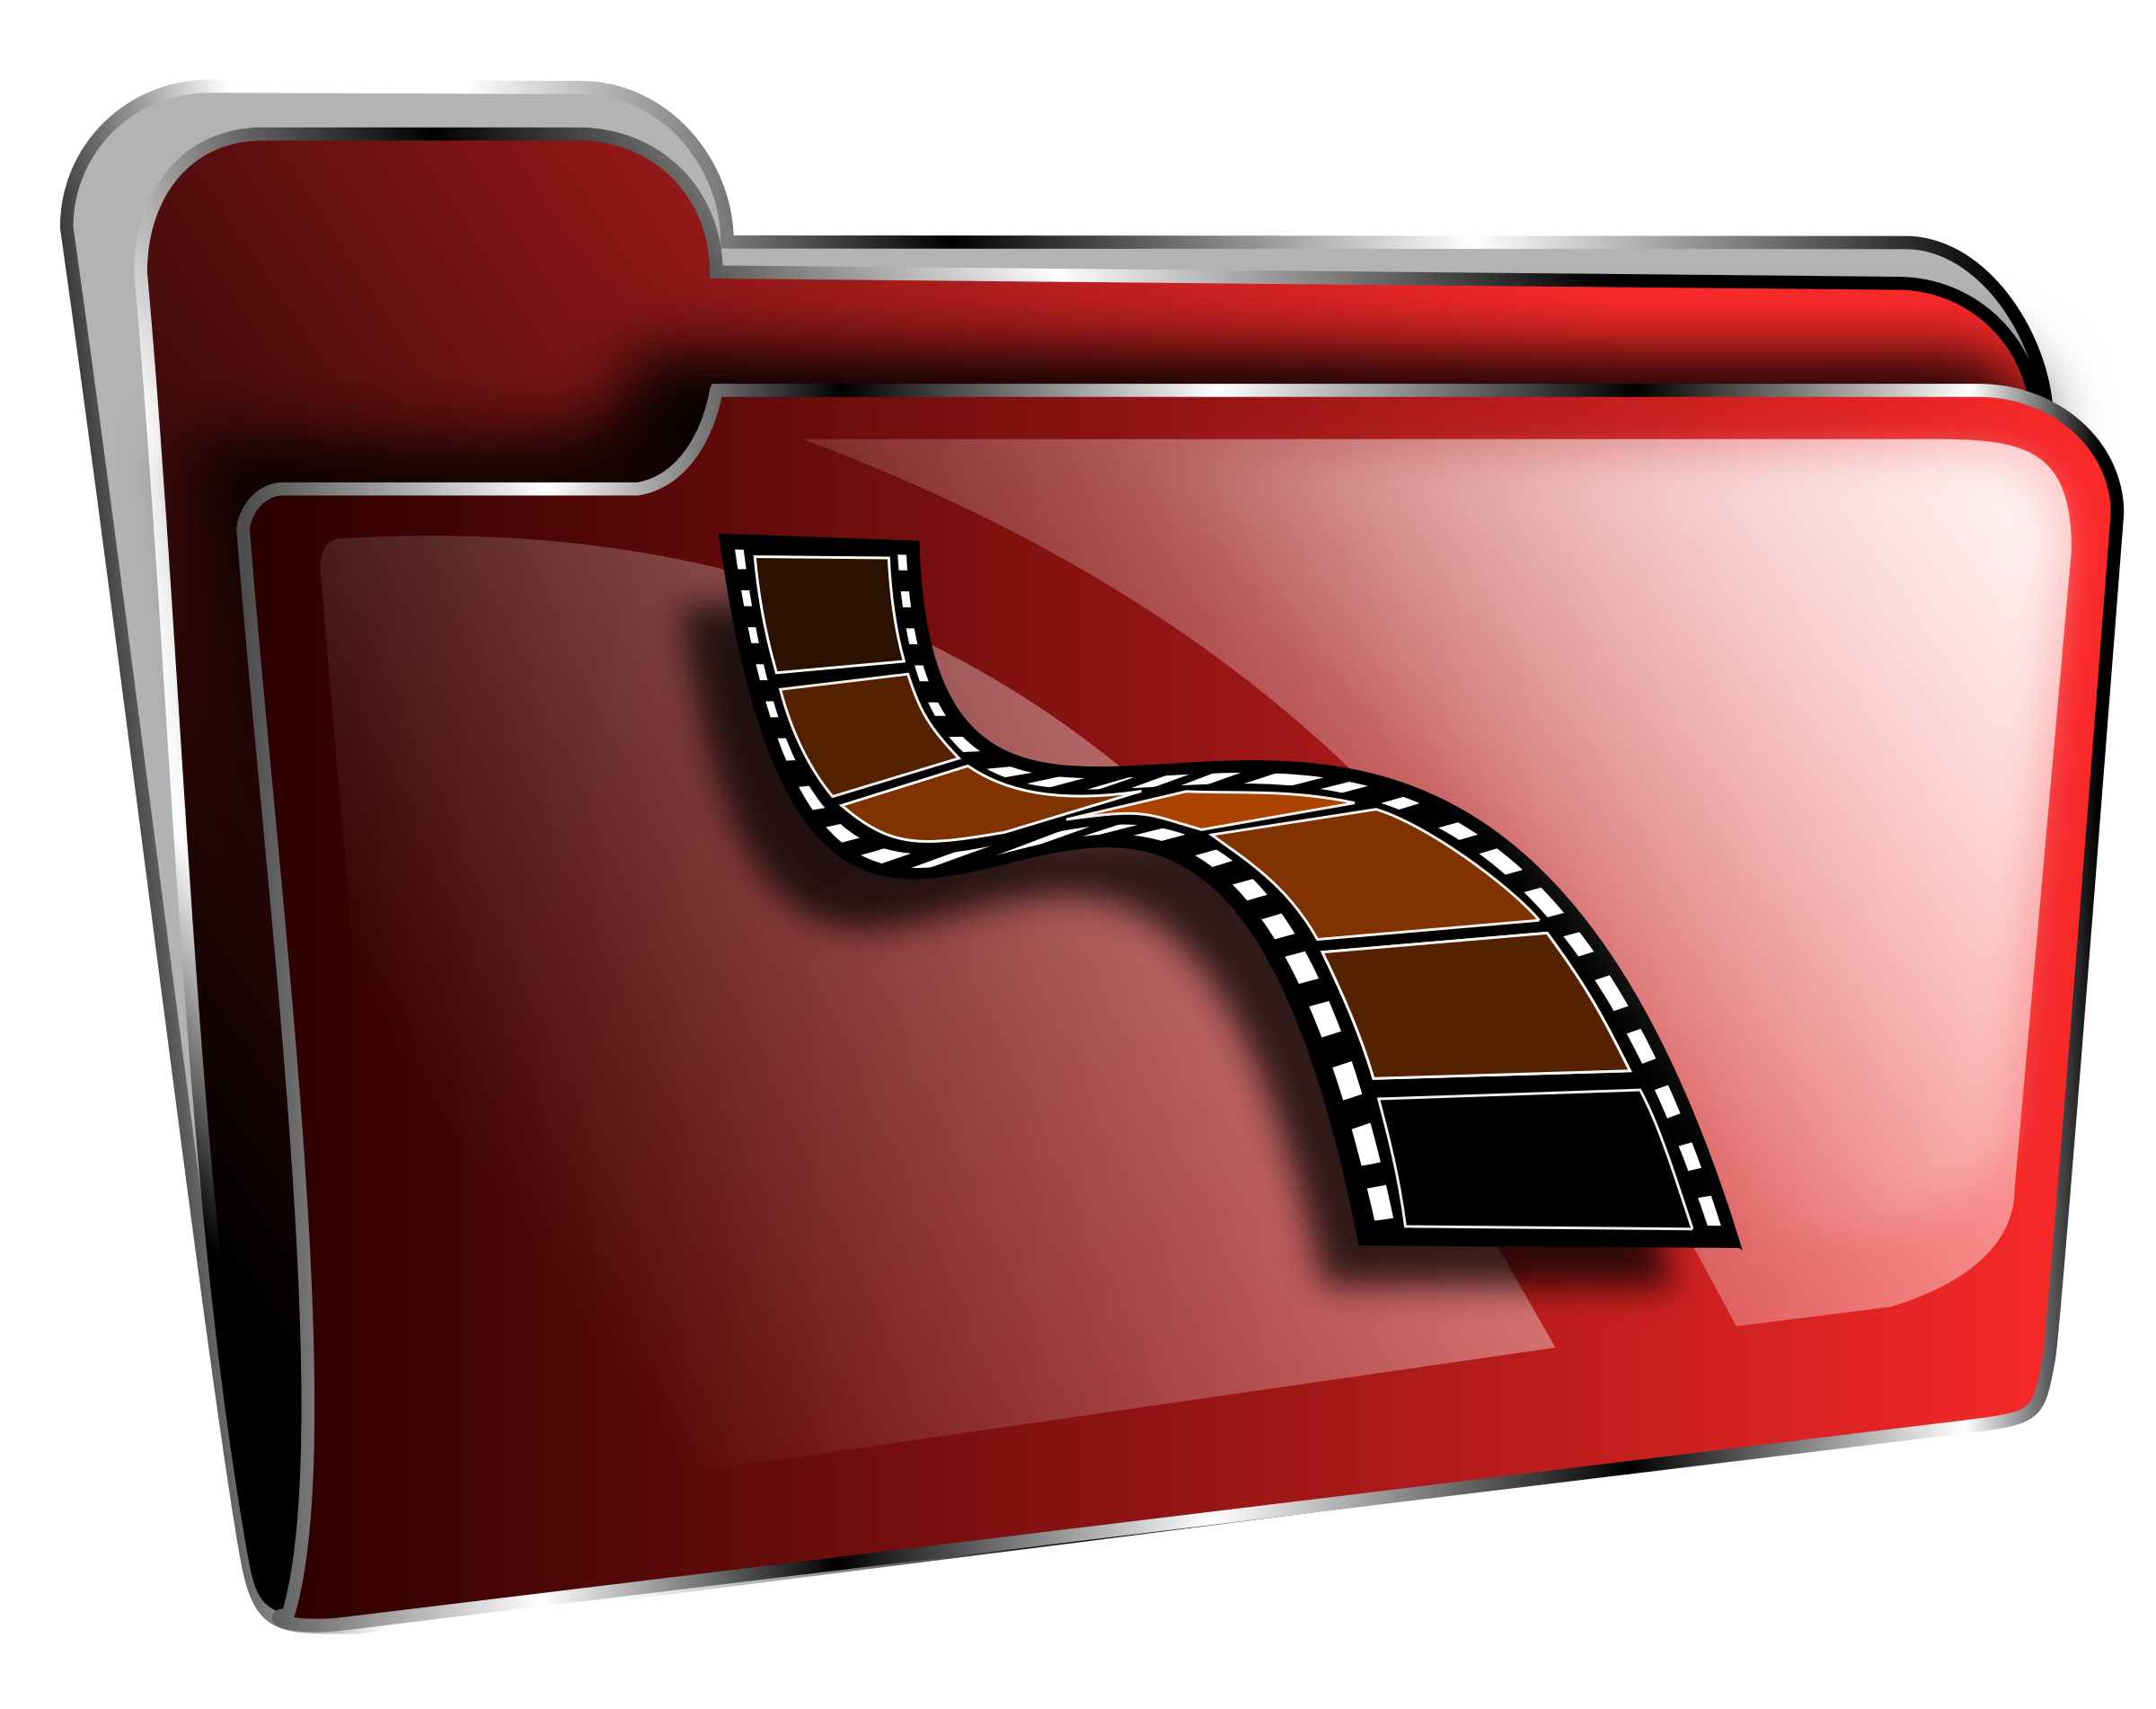 Folder icon red video by roshellin